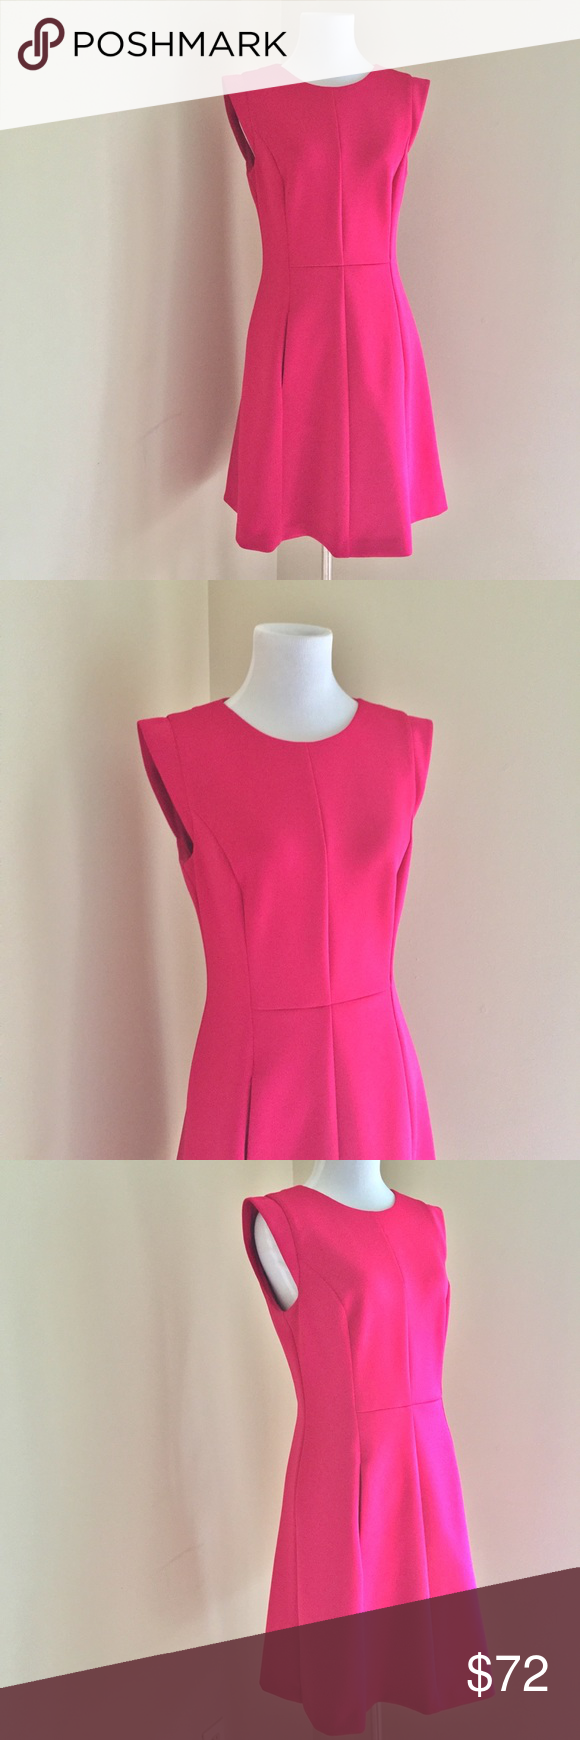 Vince Camuto Pink Fit And Flare Cap Sleeve Dress Capped Sleeve Dress Clothes Design Fit And Flare [ 1740 x 580 Pixel ]